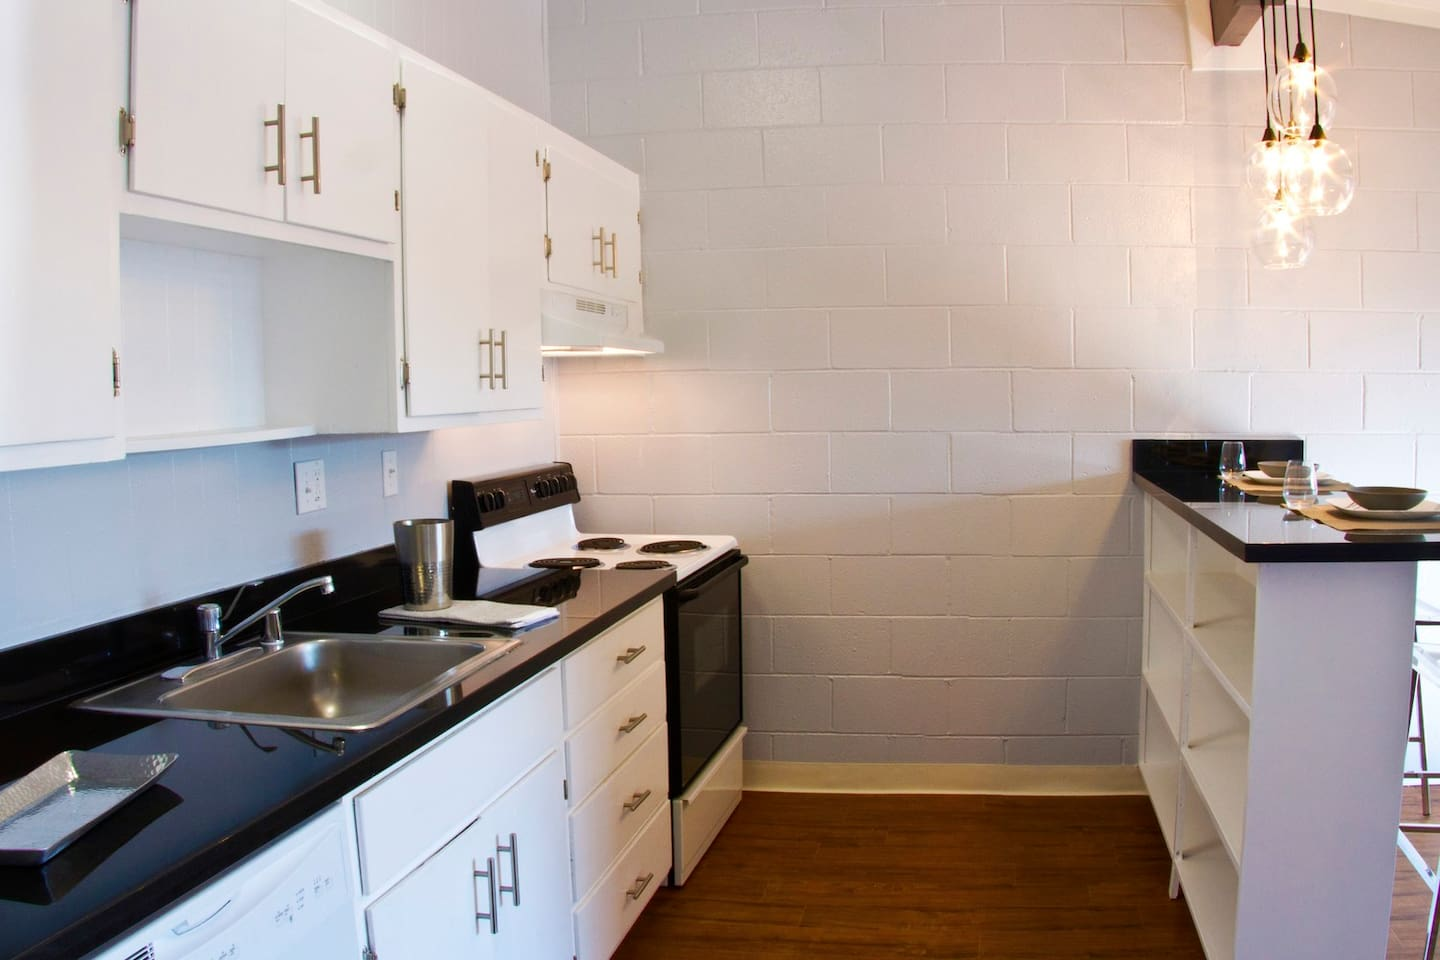 Includes kitchen, dish washer, pantry and stove. No microwave.